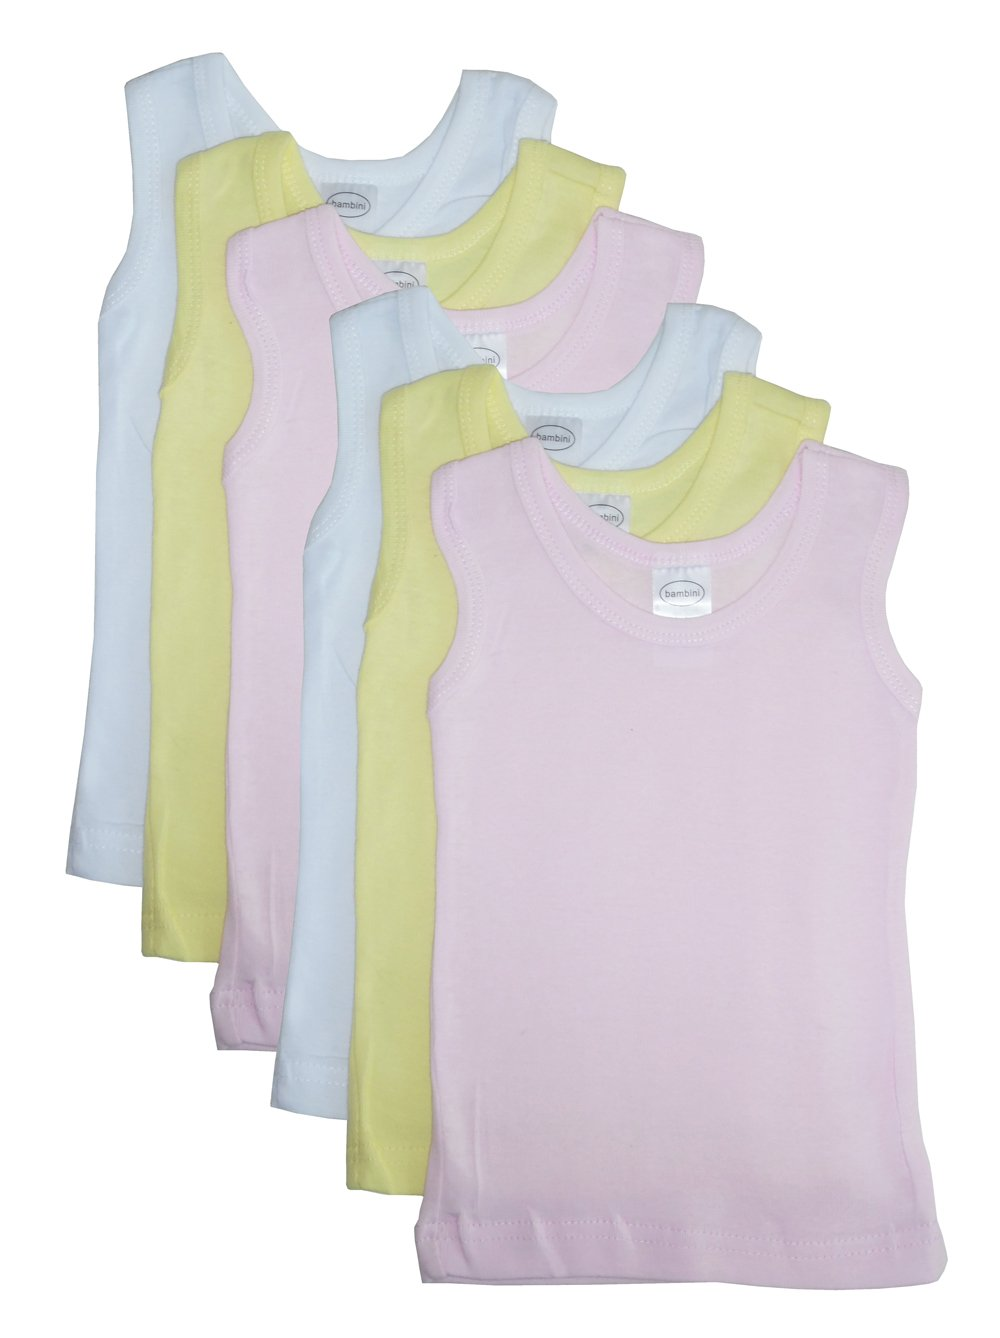 Bambini Unisex Baby 6-Pack Tank Tops